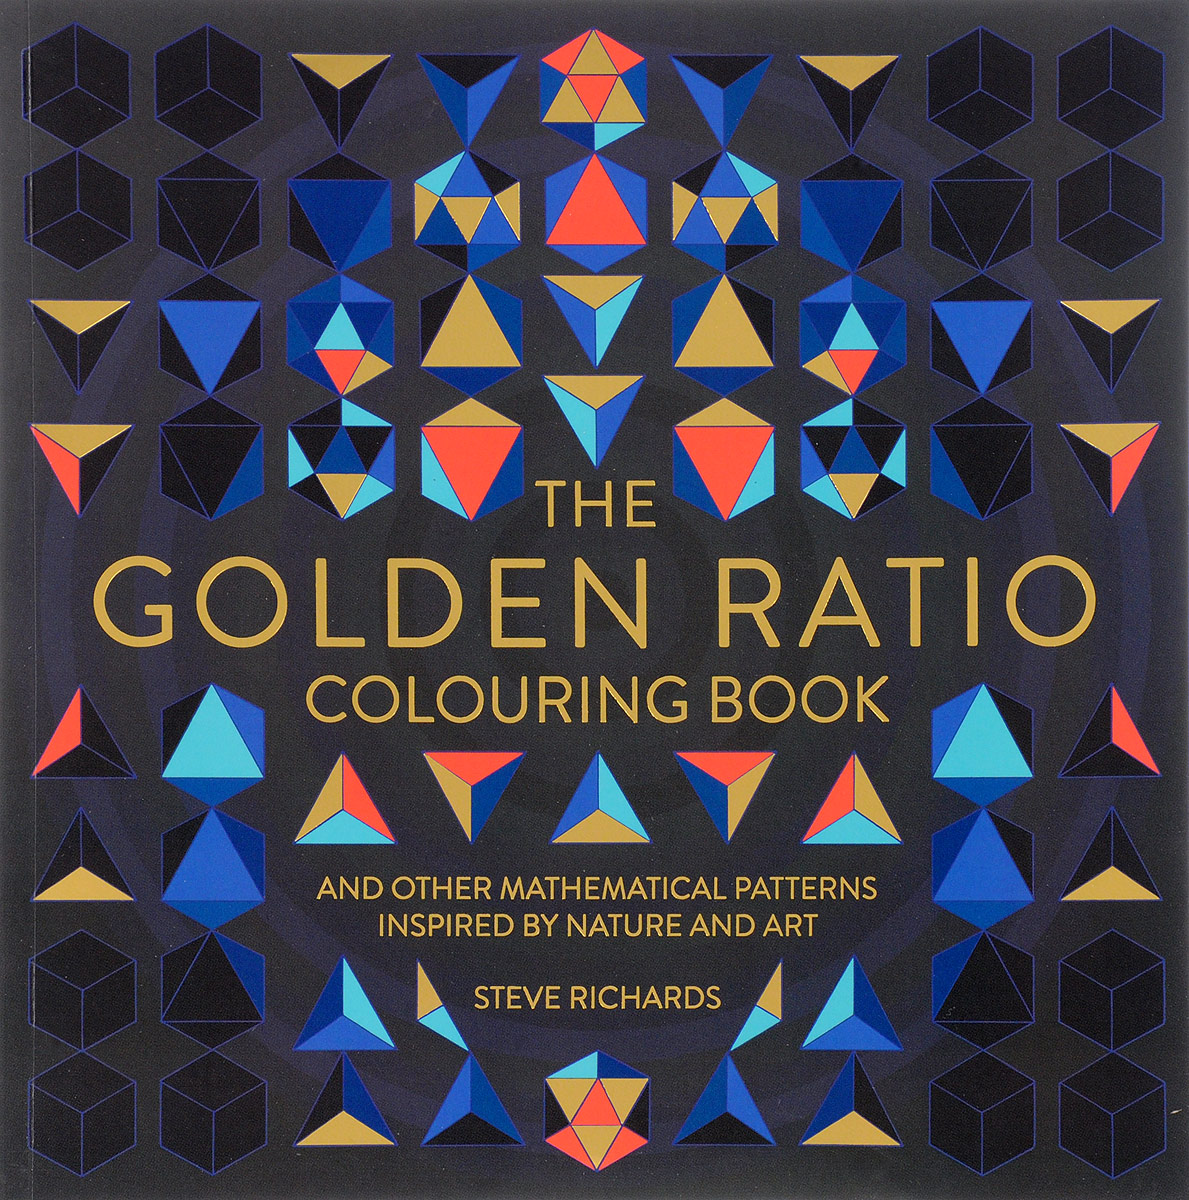 The Golden Ratio Colouring Book: And Other Mathematical Patterns Inspired by Nature and Art die hard the official colouring book